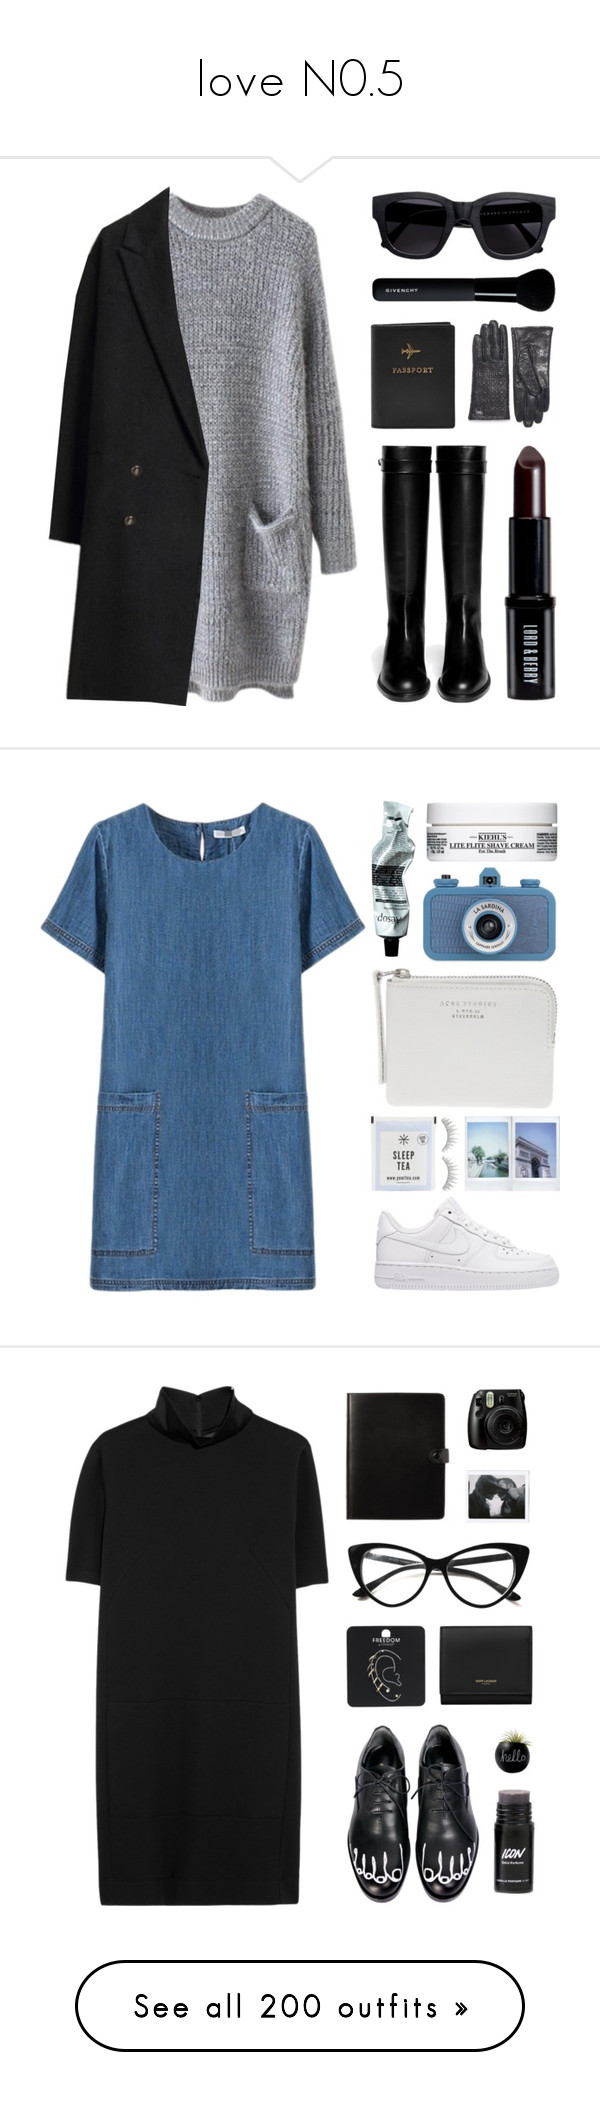 love N0.5 by angel1202003-1 on Polyvore featuring mode, Givenchy, Les Prairies de Paris, Lord & Berry, FOSSIL, Acne Studios, Tommy Hilfiger, NIKE, shu uemura and The Webster